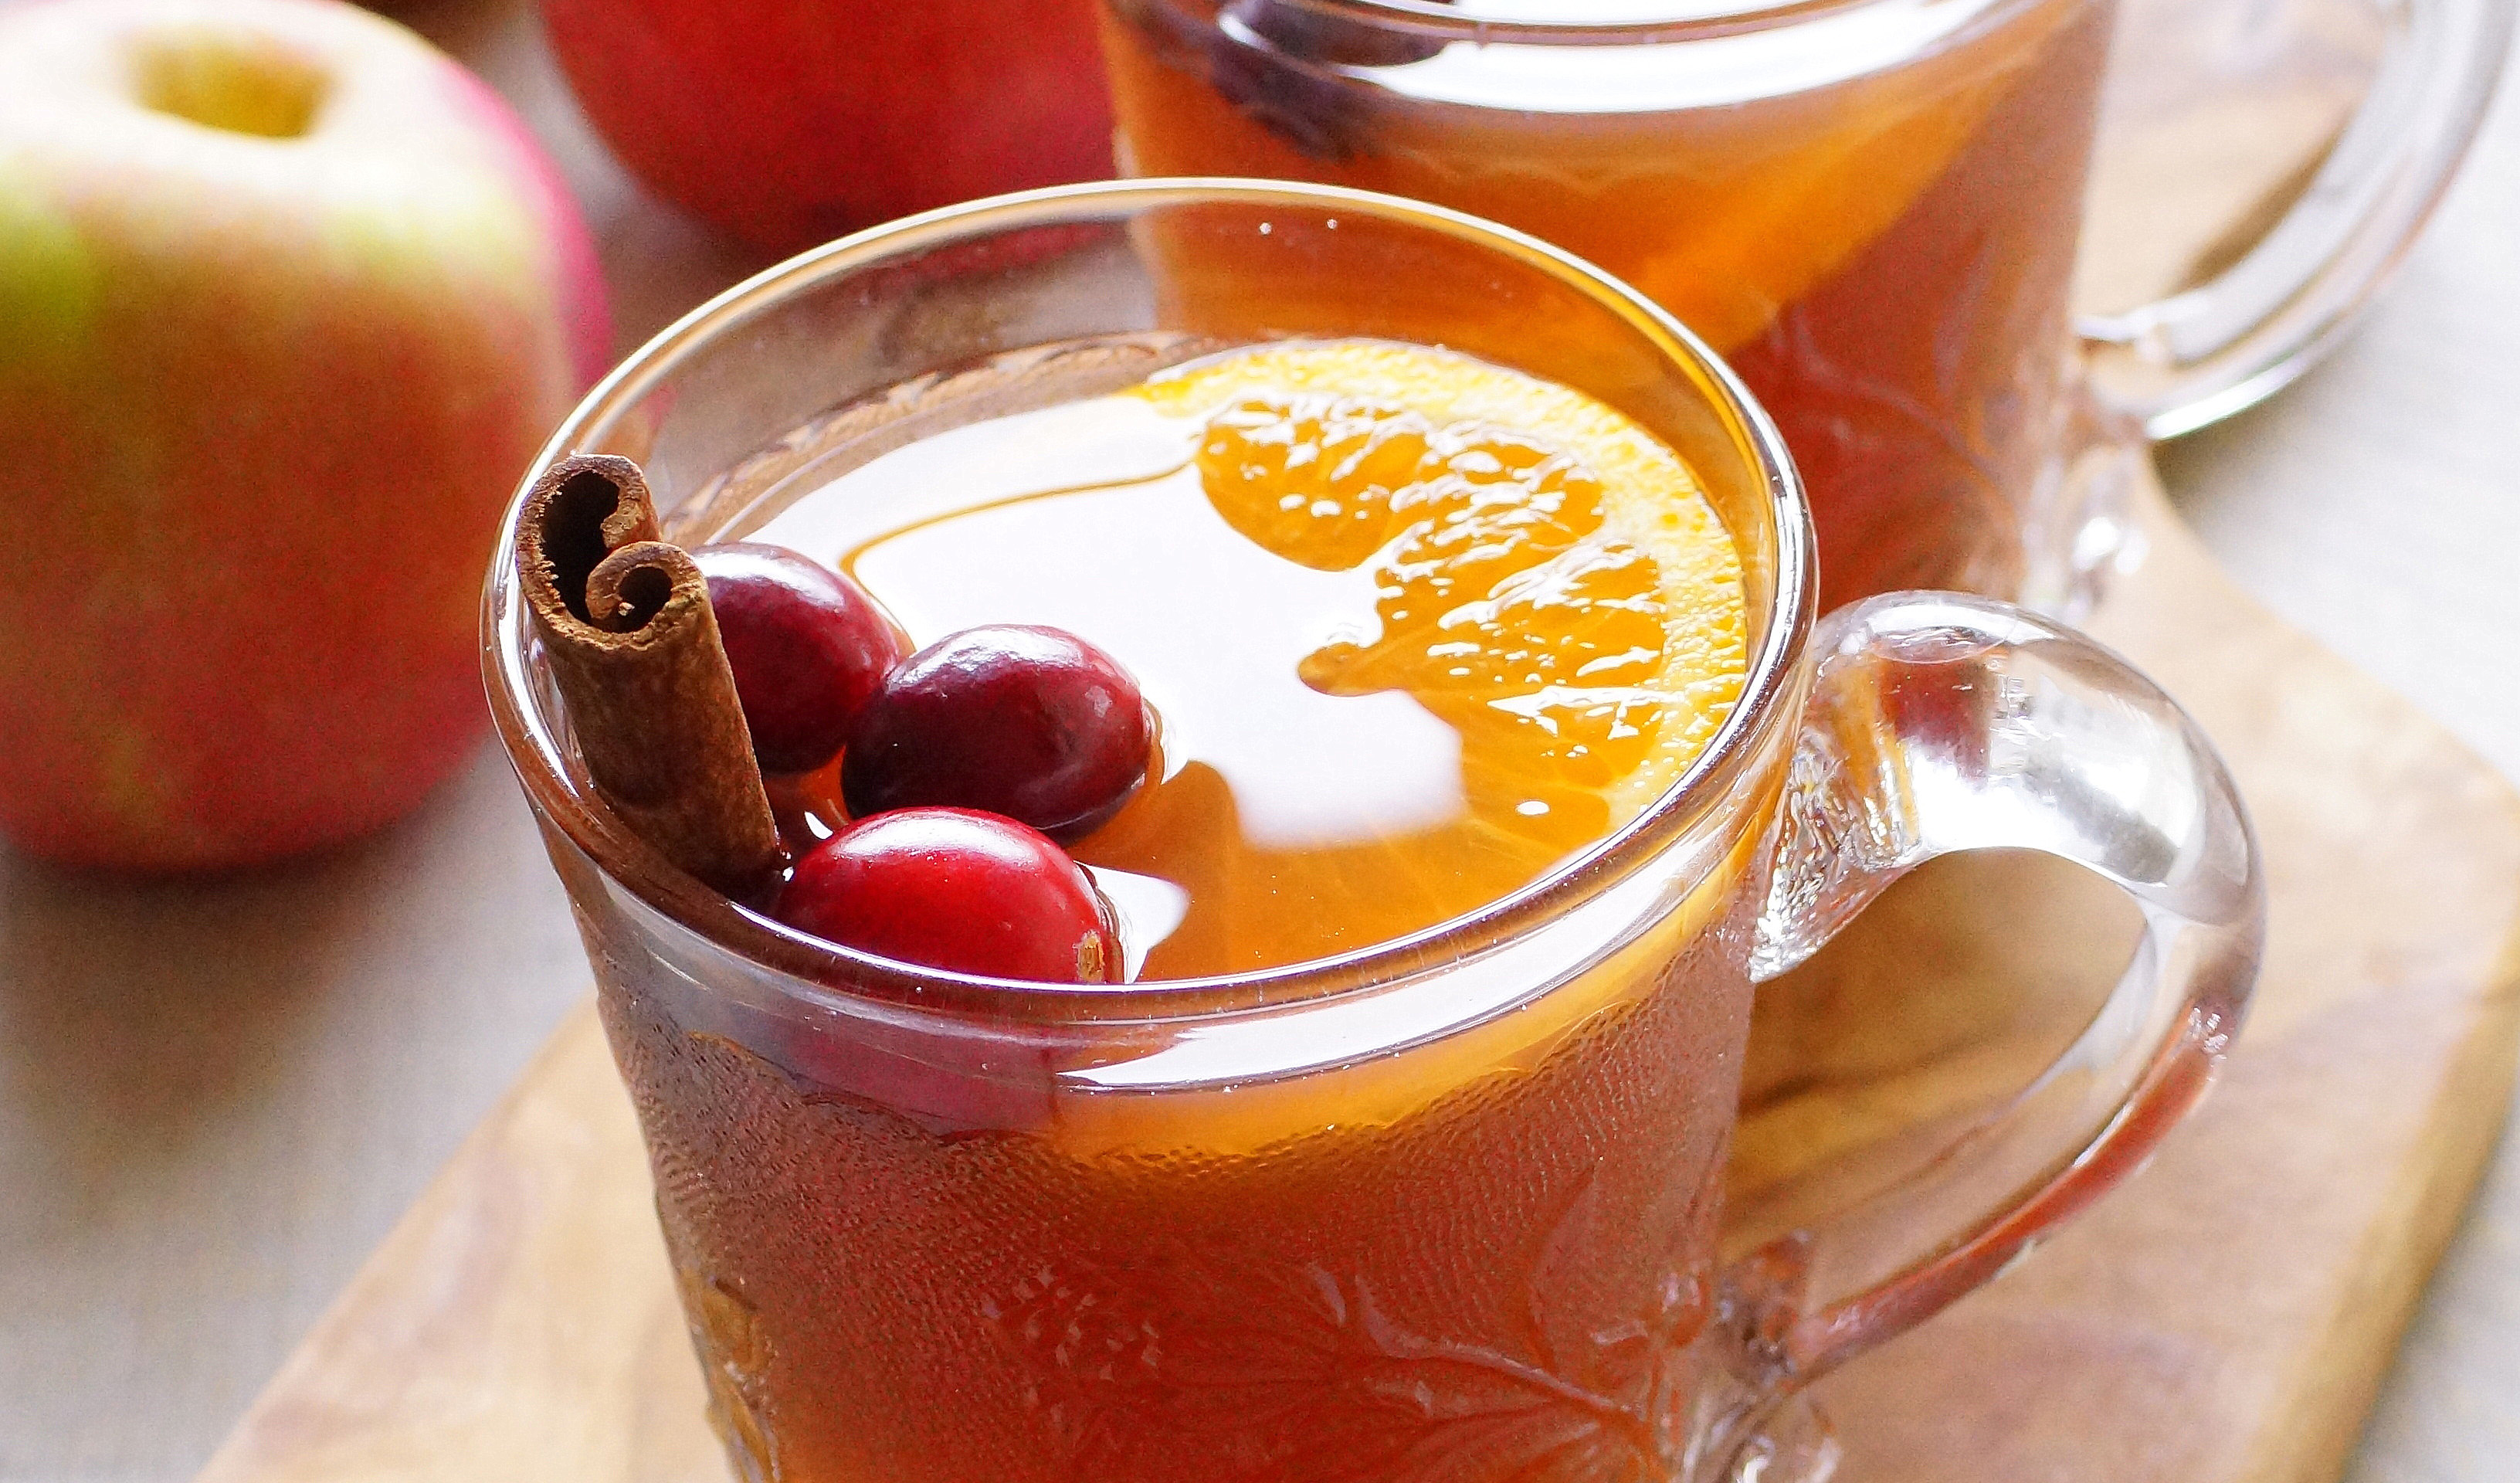 A MOST INTERESTING HOT APPLE CIDER RECIPE!!